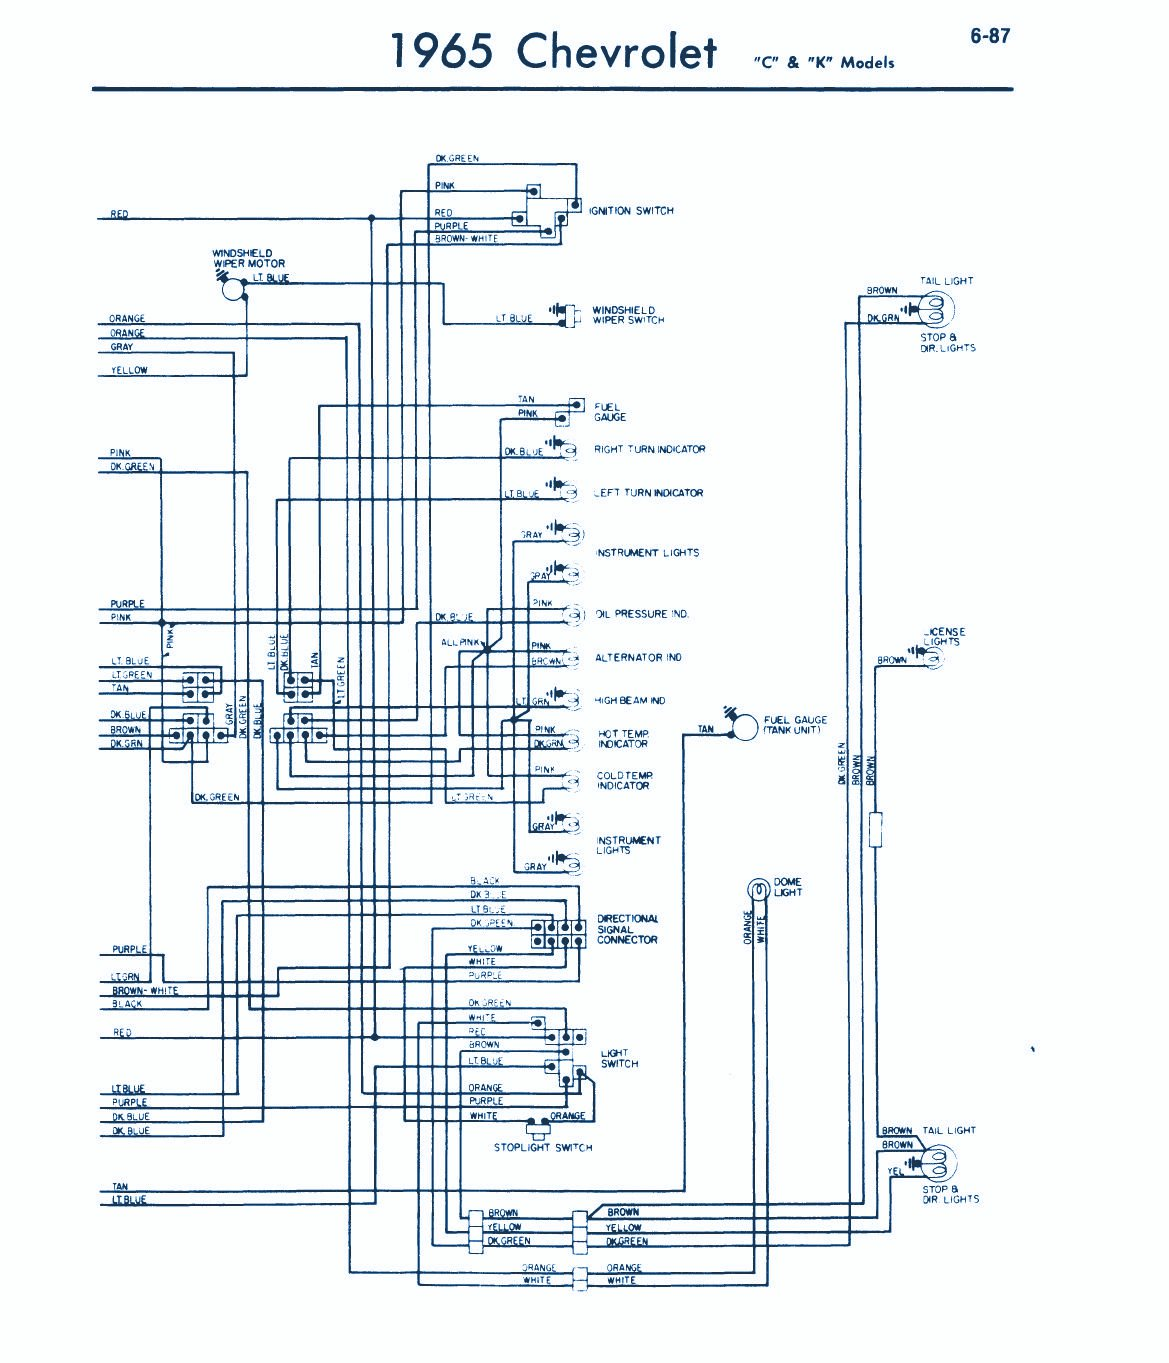 1965 chevrolet wiring diagram | auto wiring diagrams 62 chevy wiring diagram chevy wiring diagram